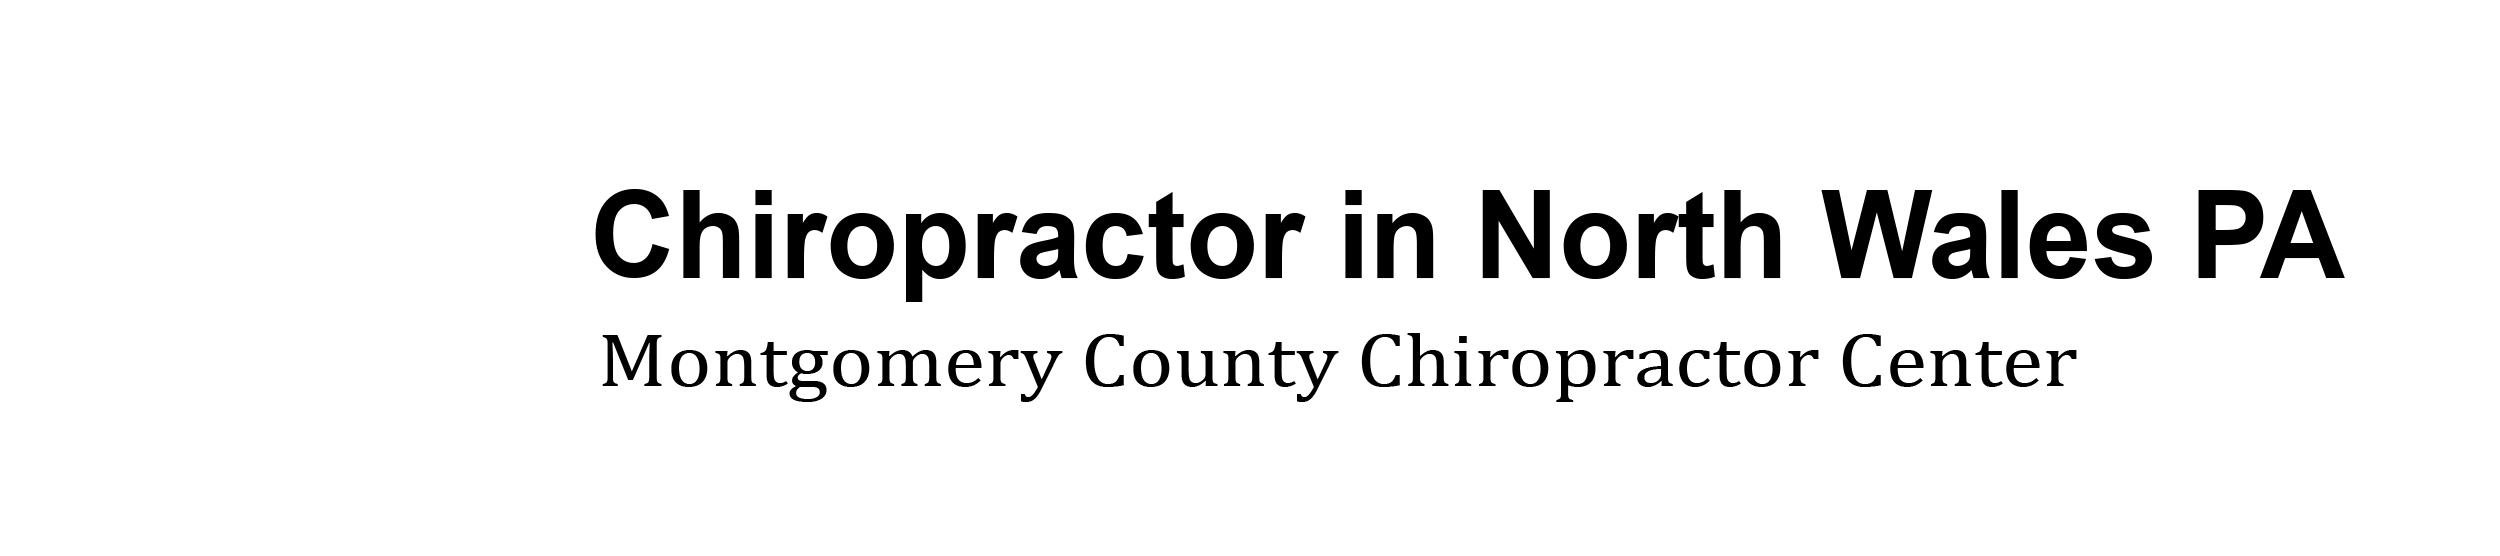 Montgomery County Chiropractor Center